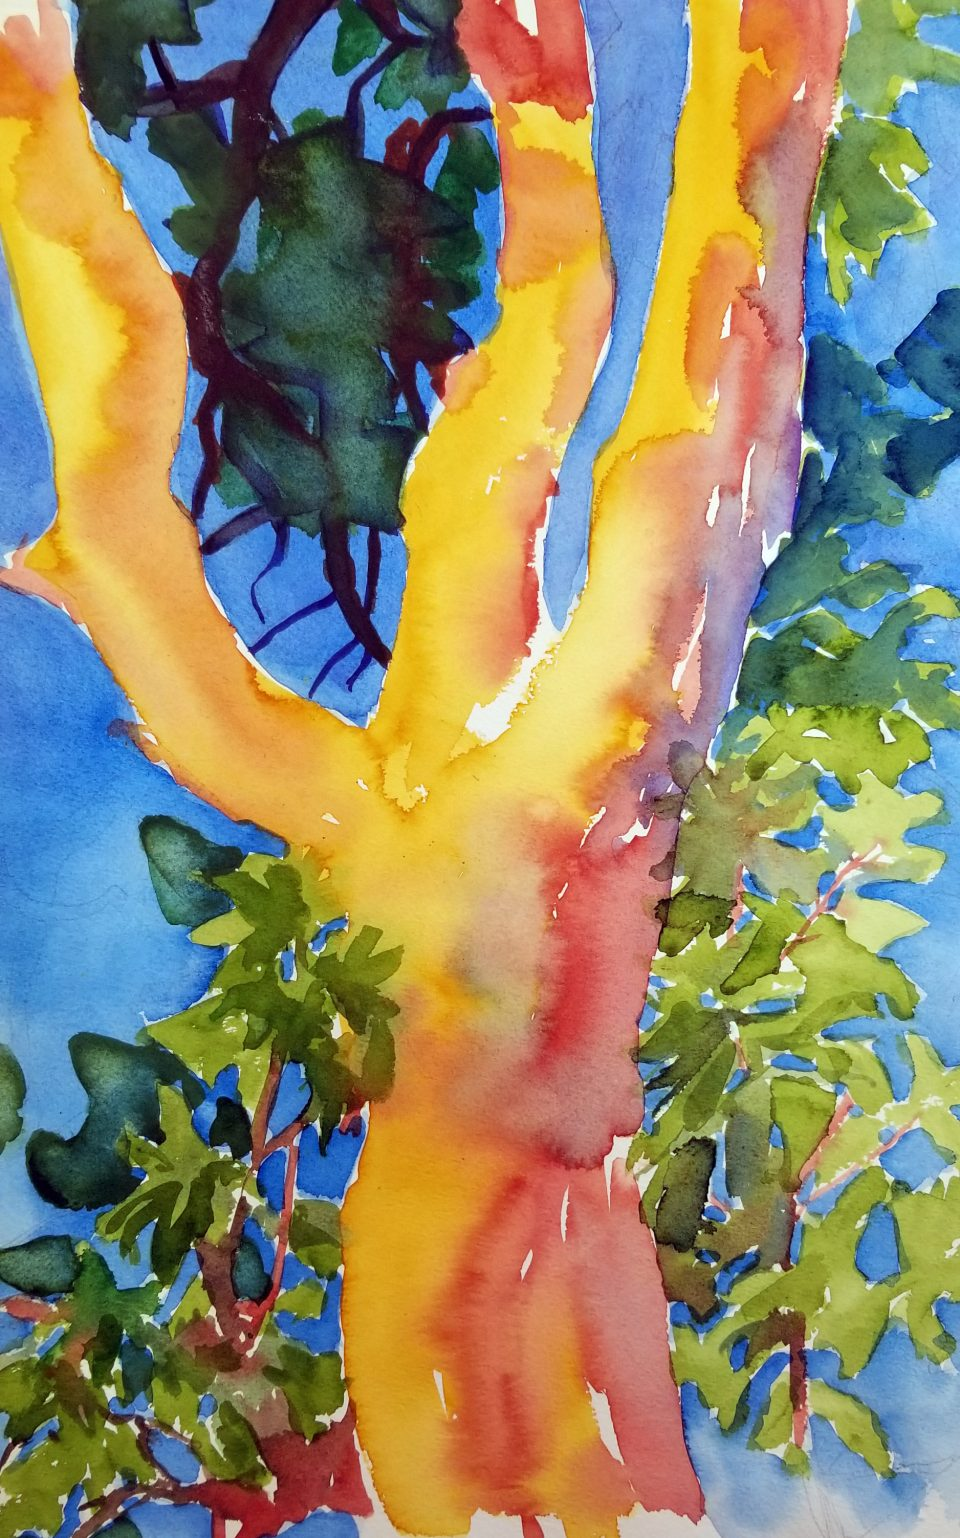 watercolor of orange, red and gold-colored madrone tree trunk against blue sky.